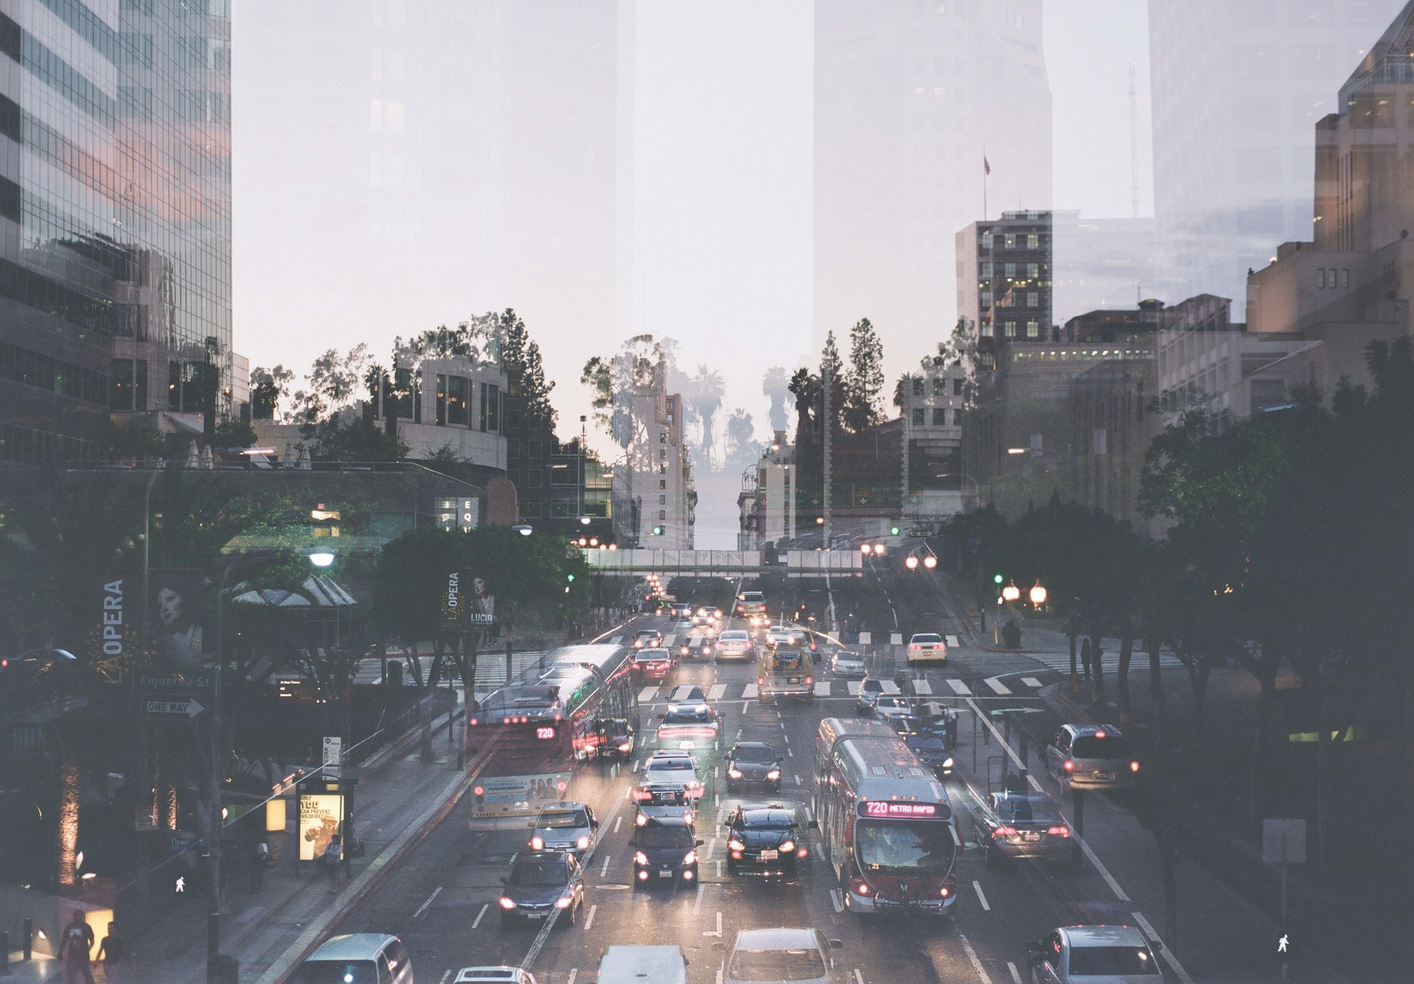 LA image of Anthony Samaniego's beautiful City Series